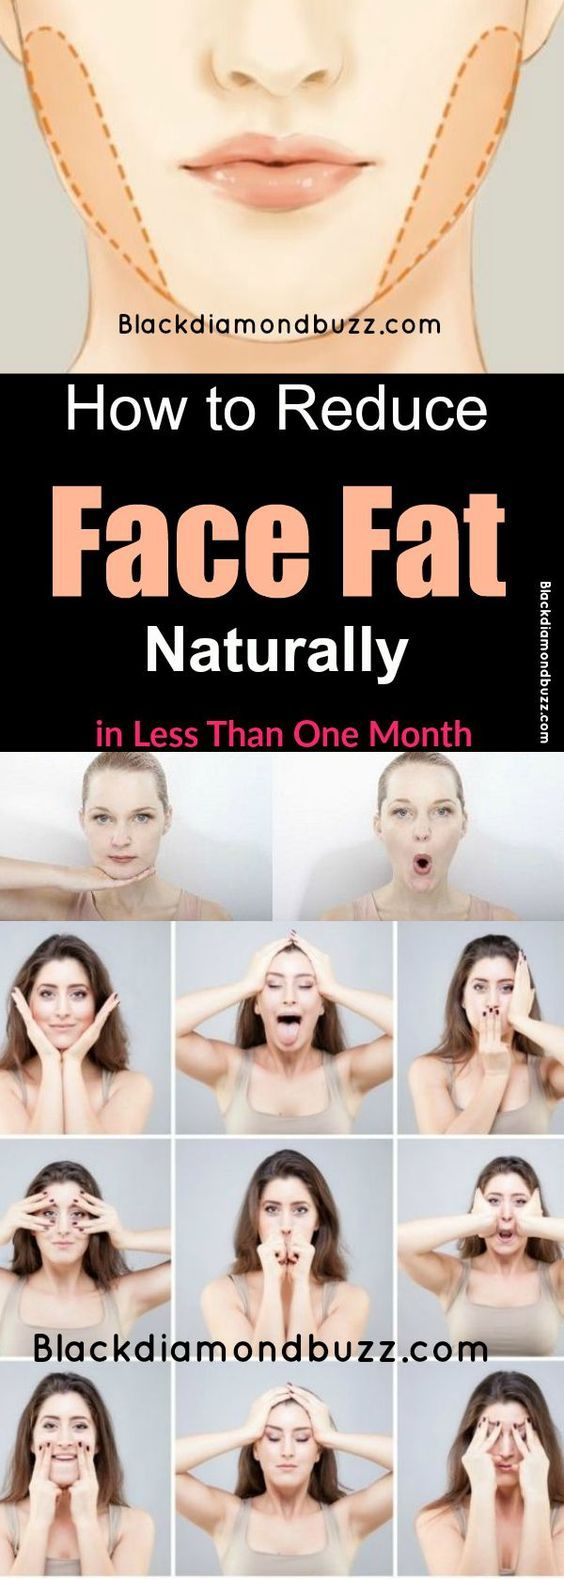 How to lose weight fast and free without products